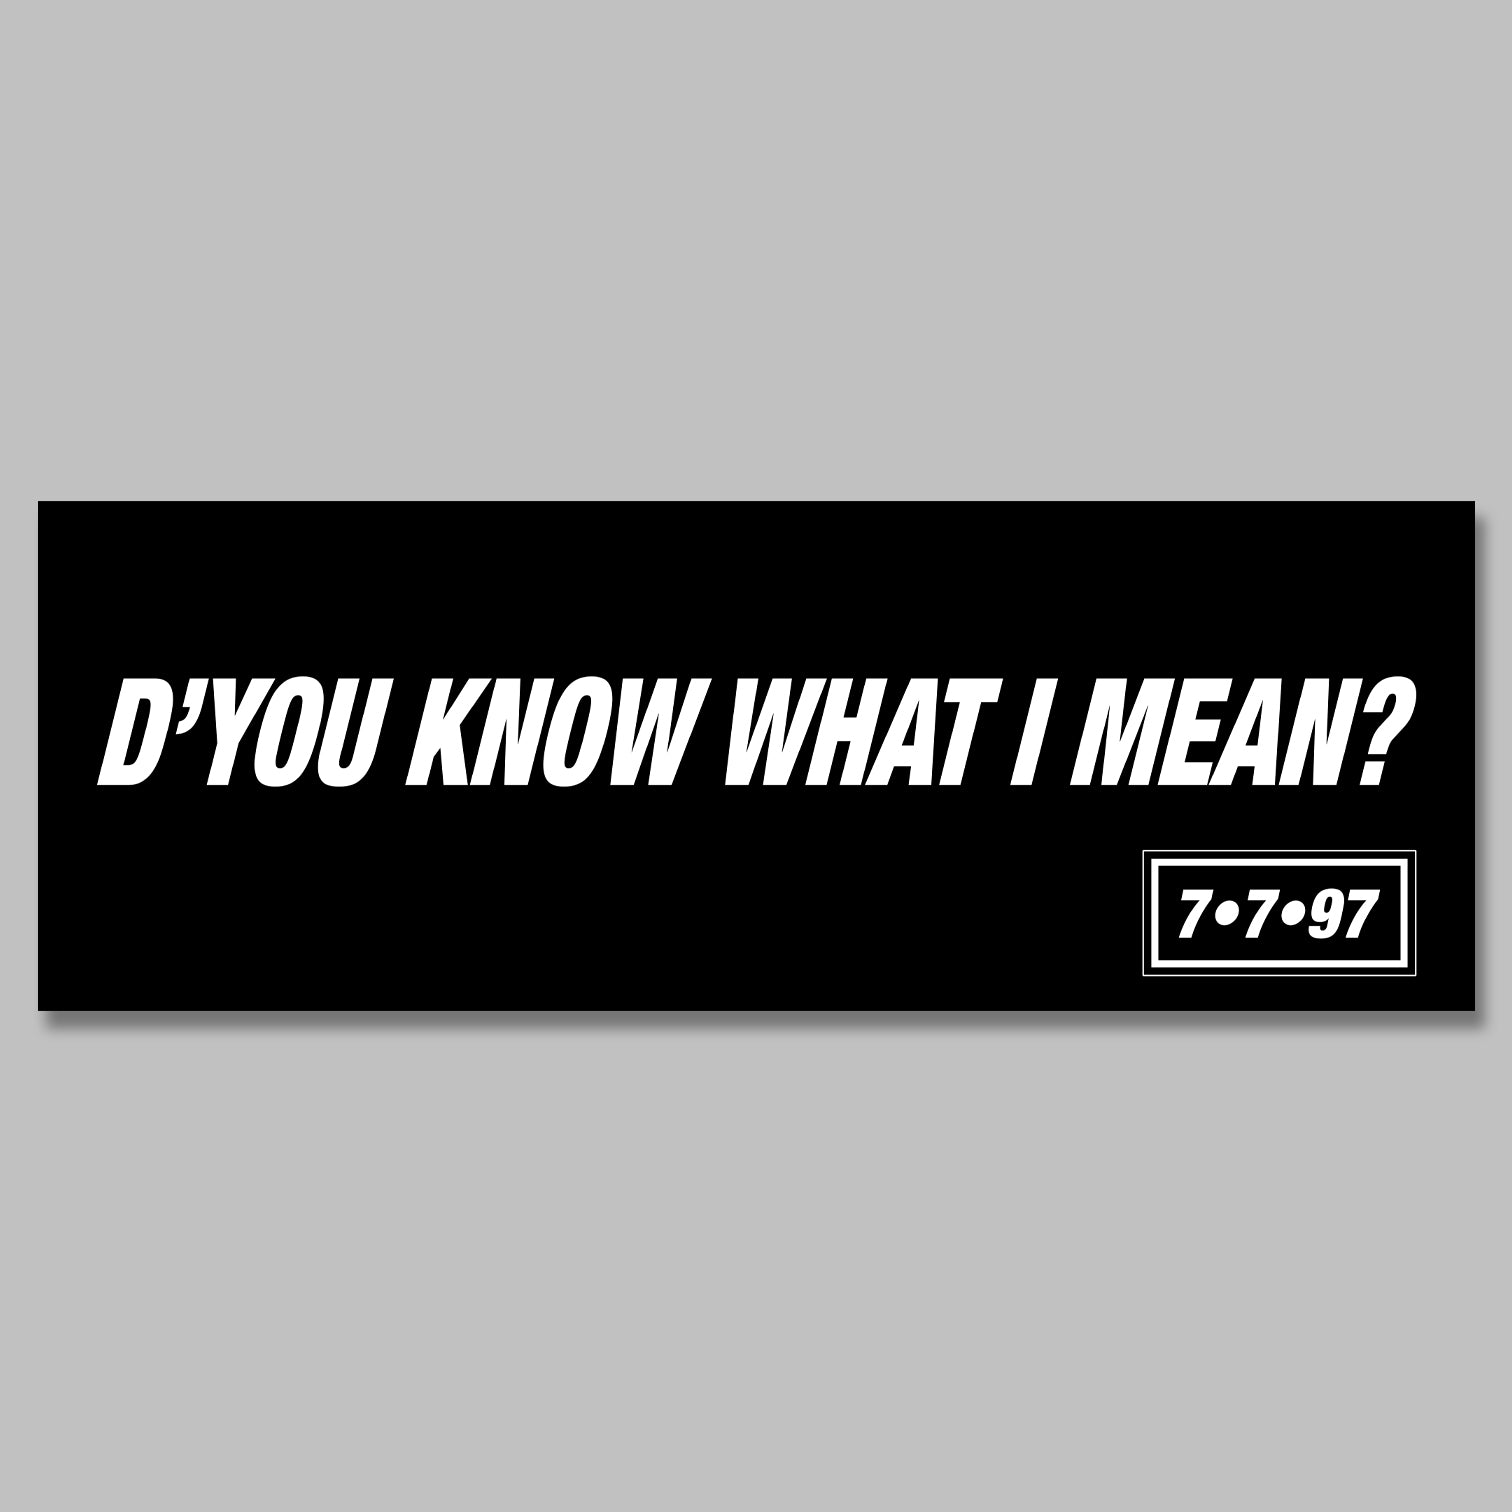 Oasis 'D'You Know What I Mean?' promo Banner